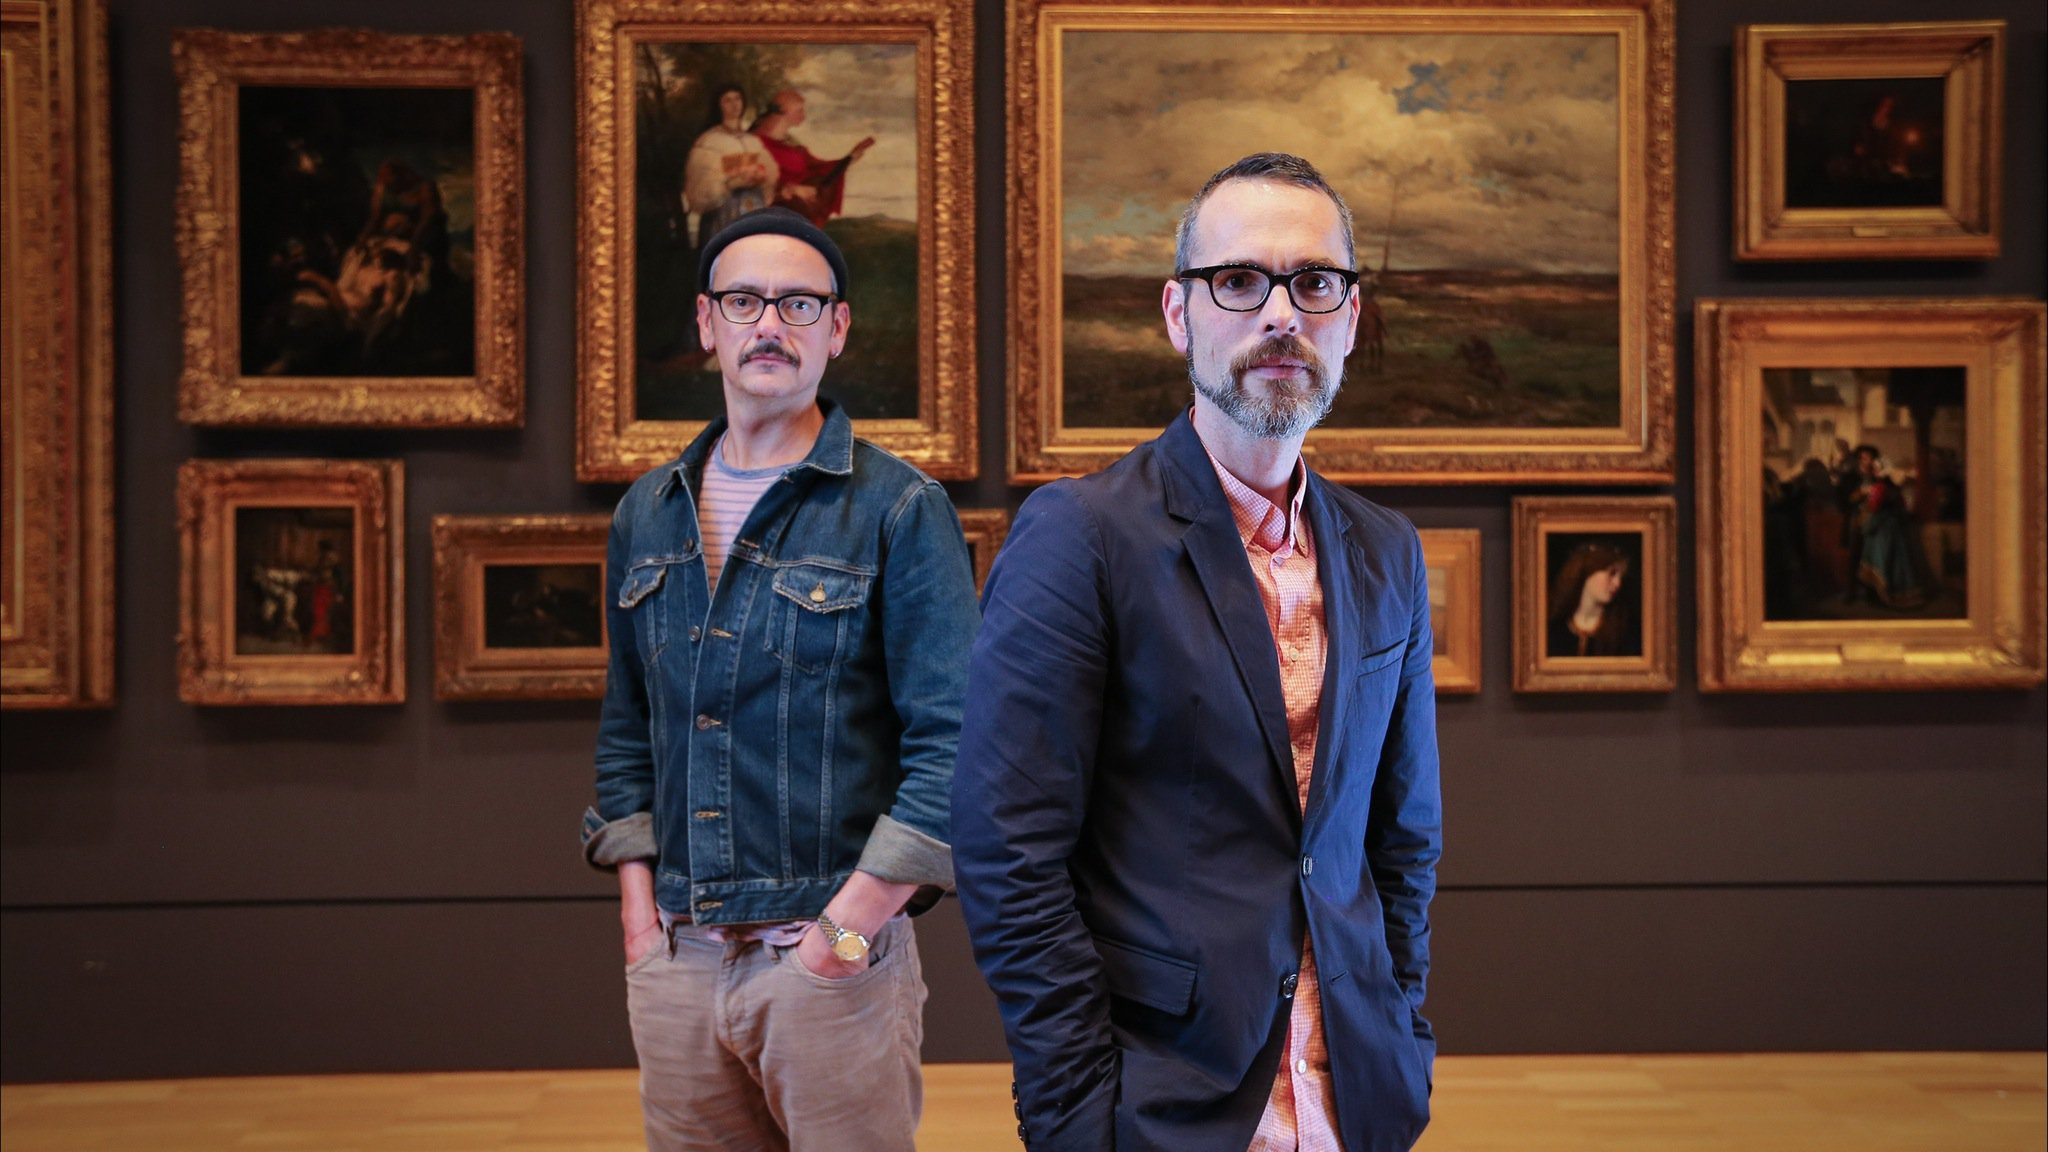 Rolf Snoeren and Viktor Horsting at the National Gallery of Victoria, Melbourne